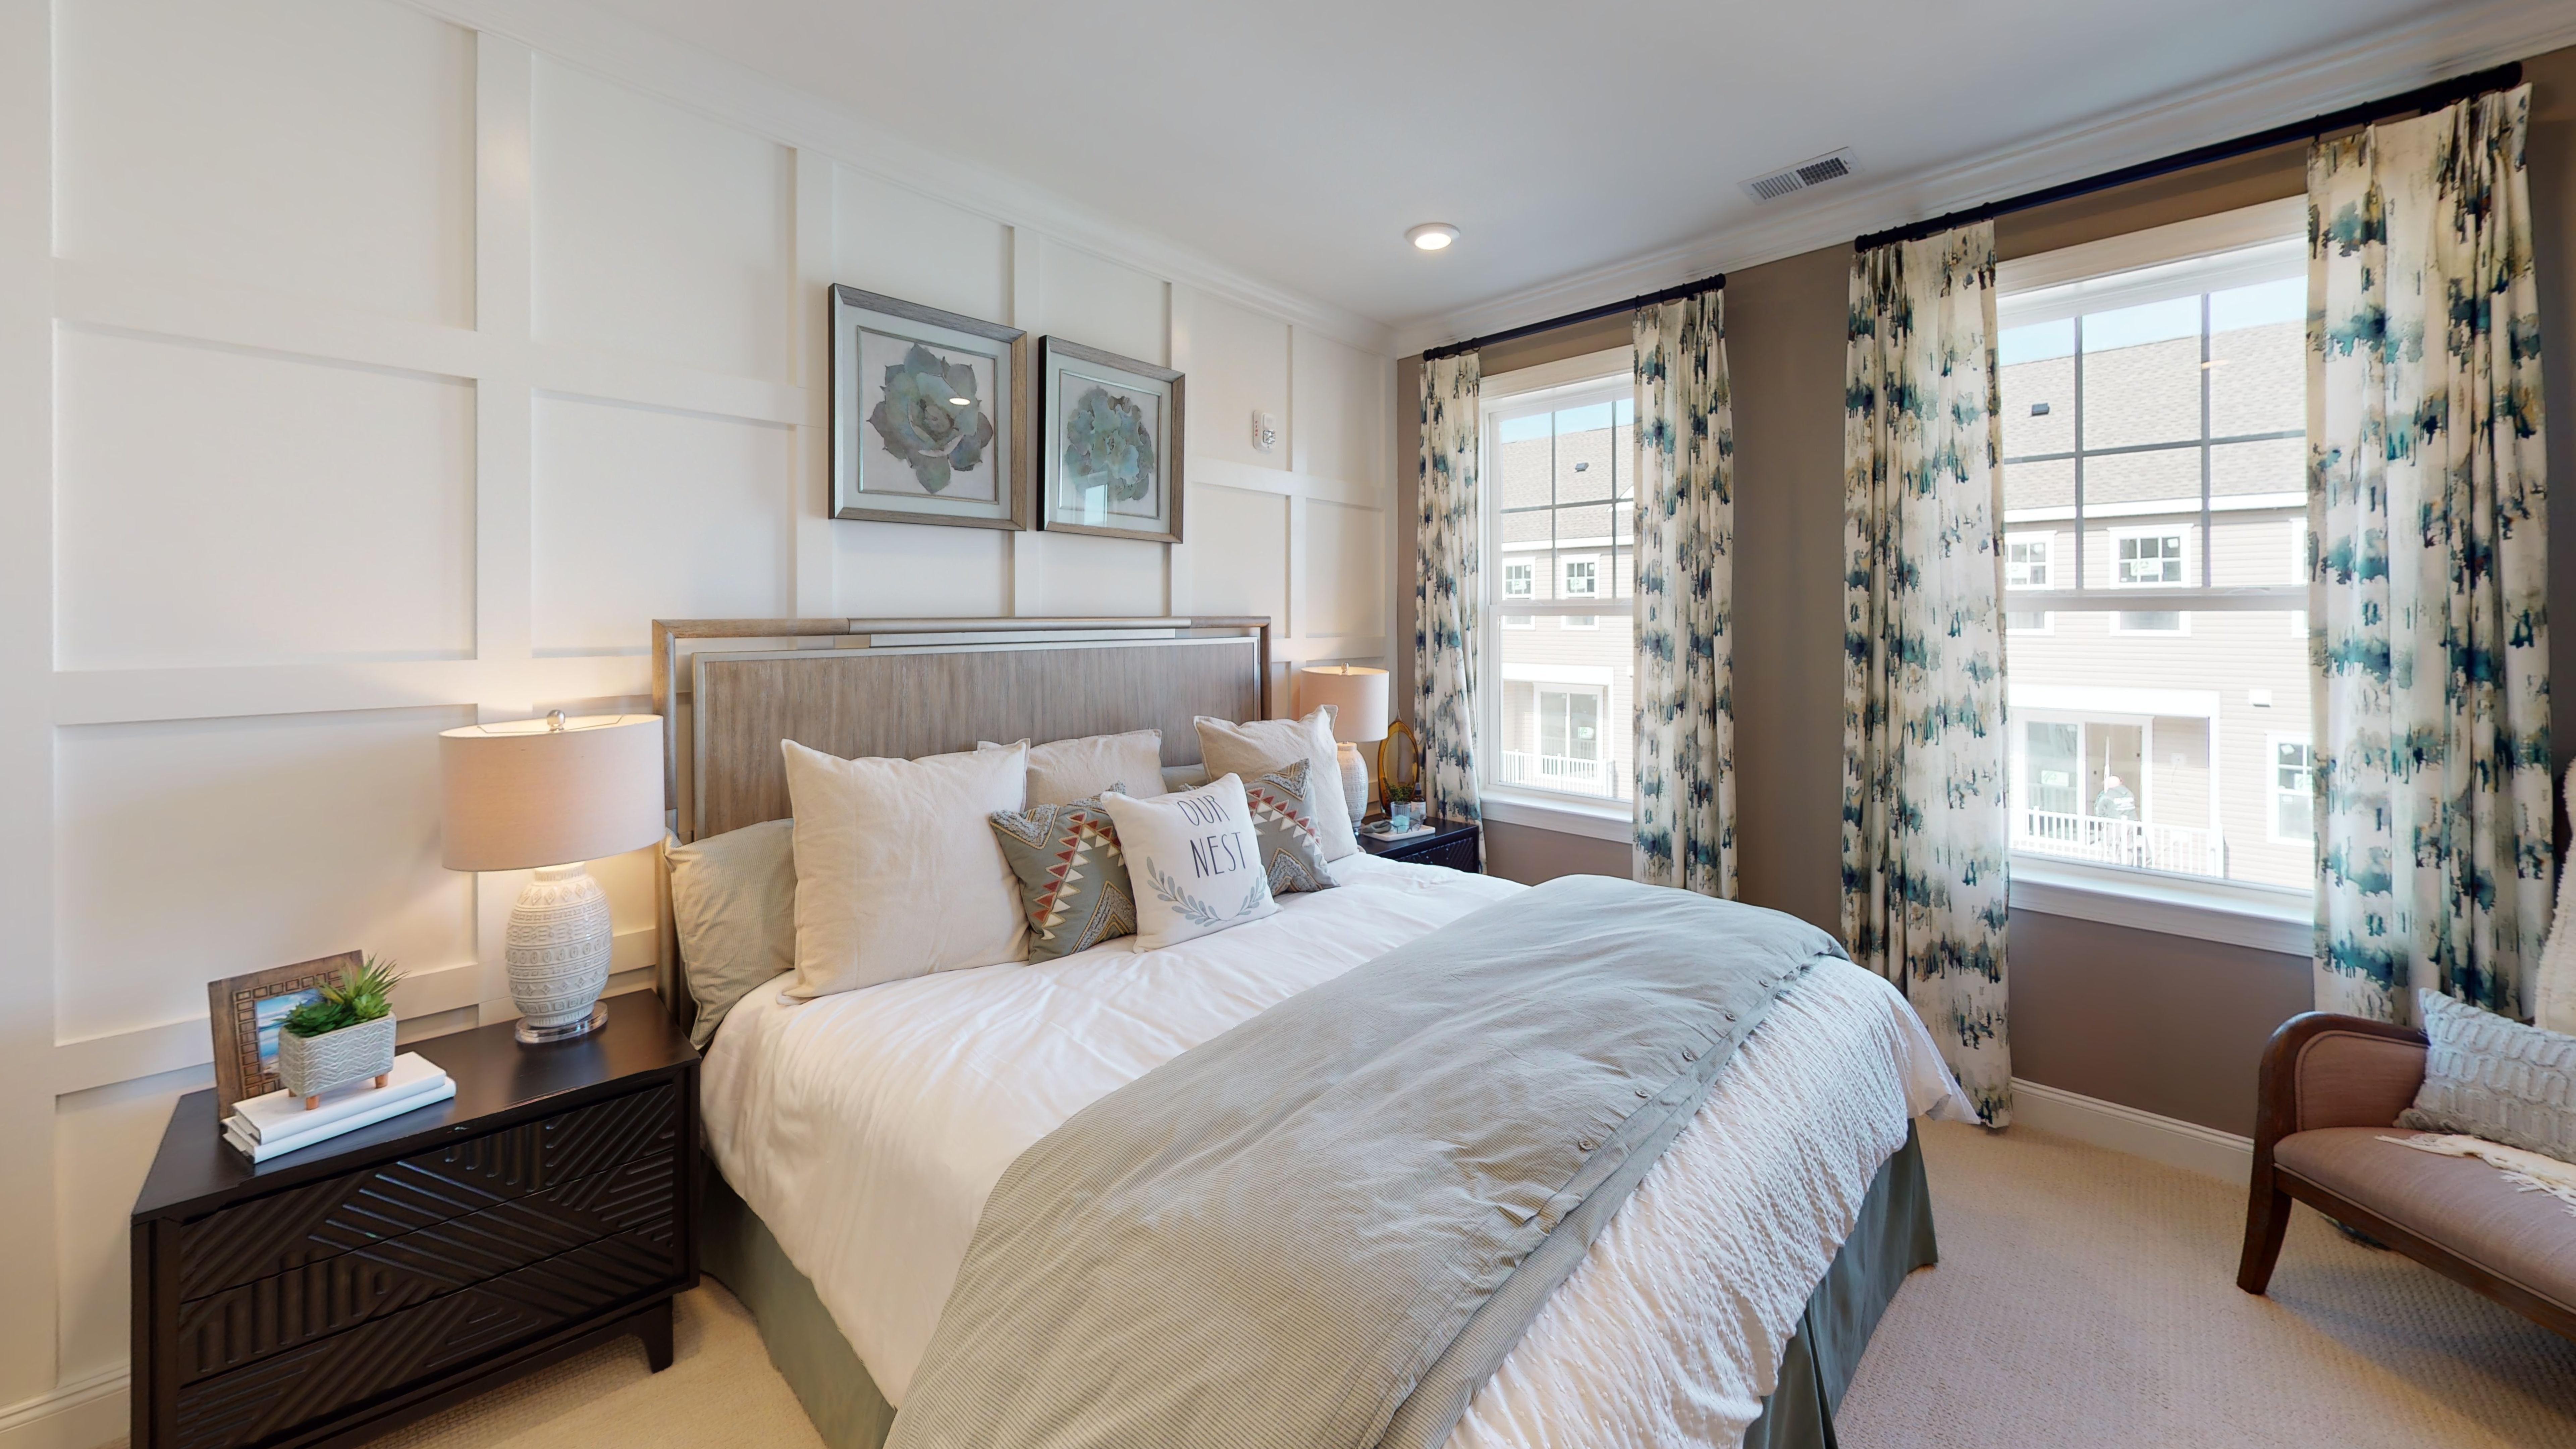 Bedroom featured in the Aurora By American Properties Realty in Middlesex County, NJ